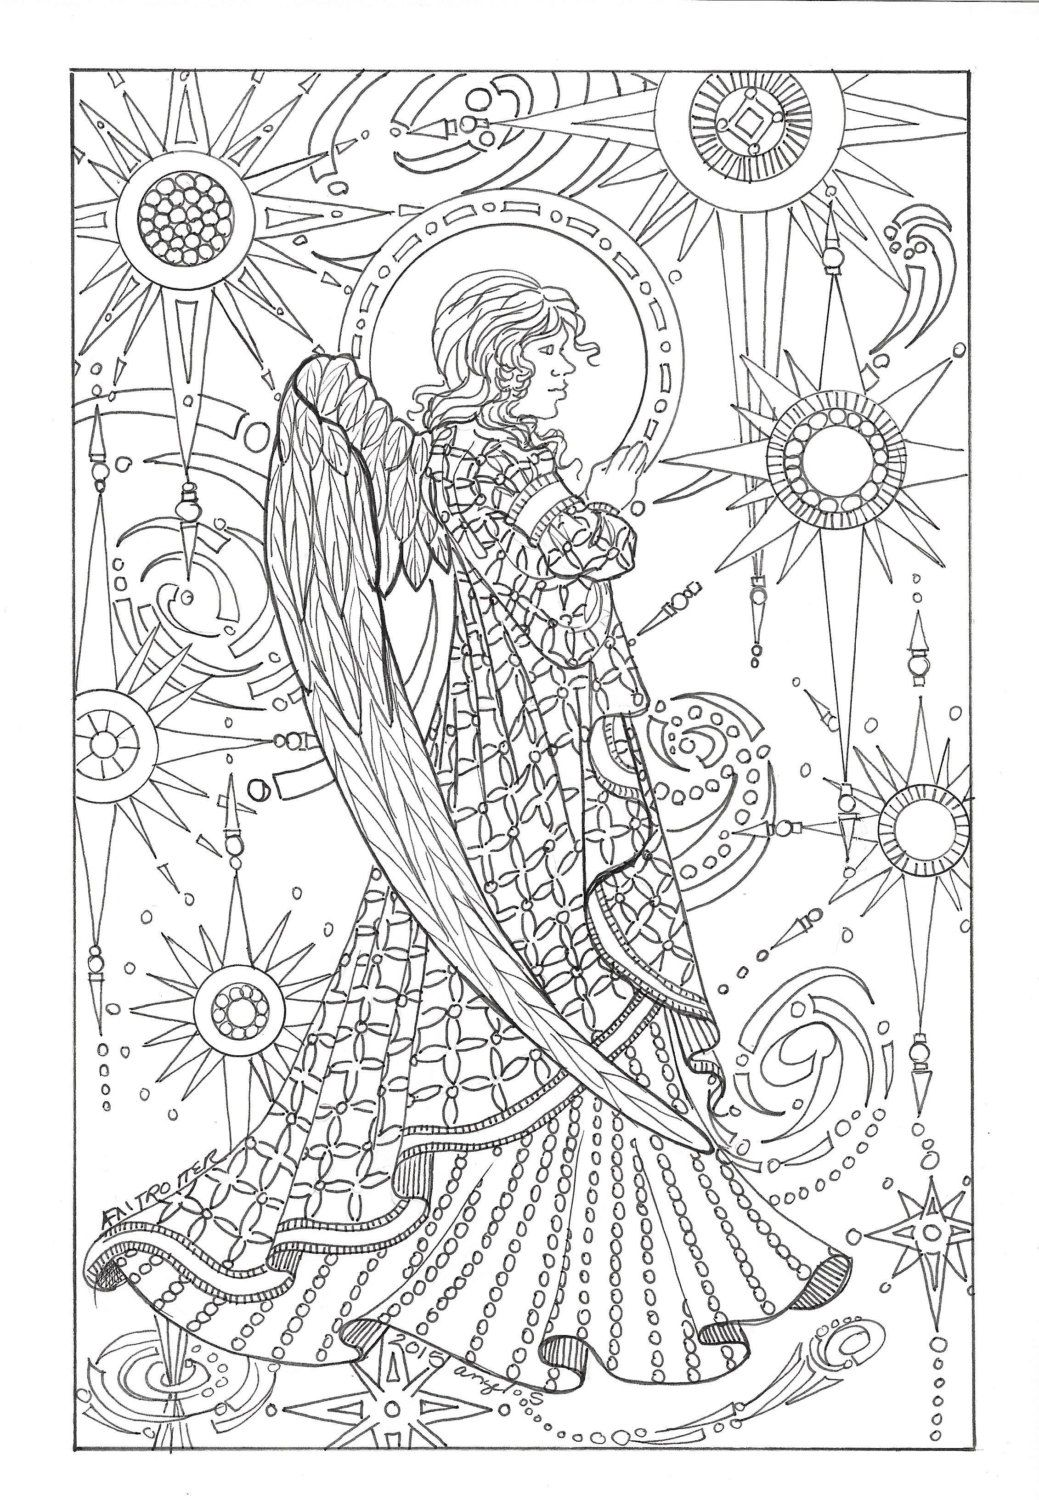 avia trotter coloring pages - photo#14